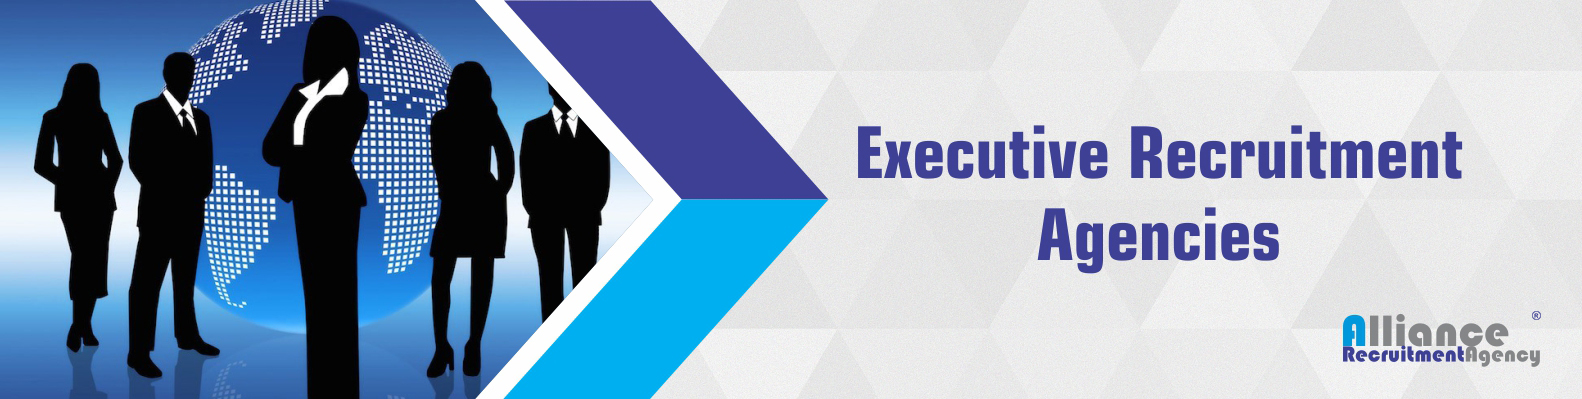 Executive Recruitment Companies - Best Executive Recruitment Agencies